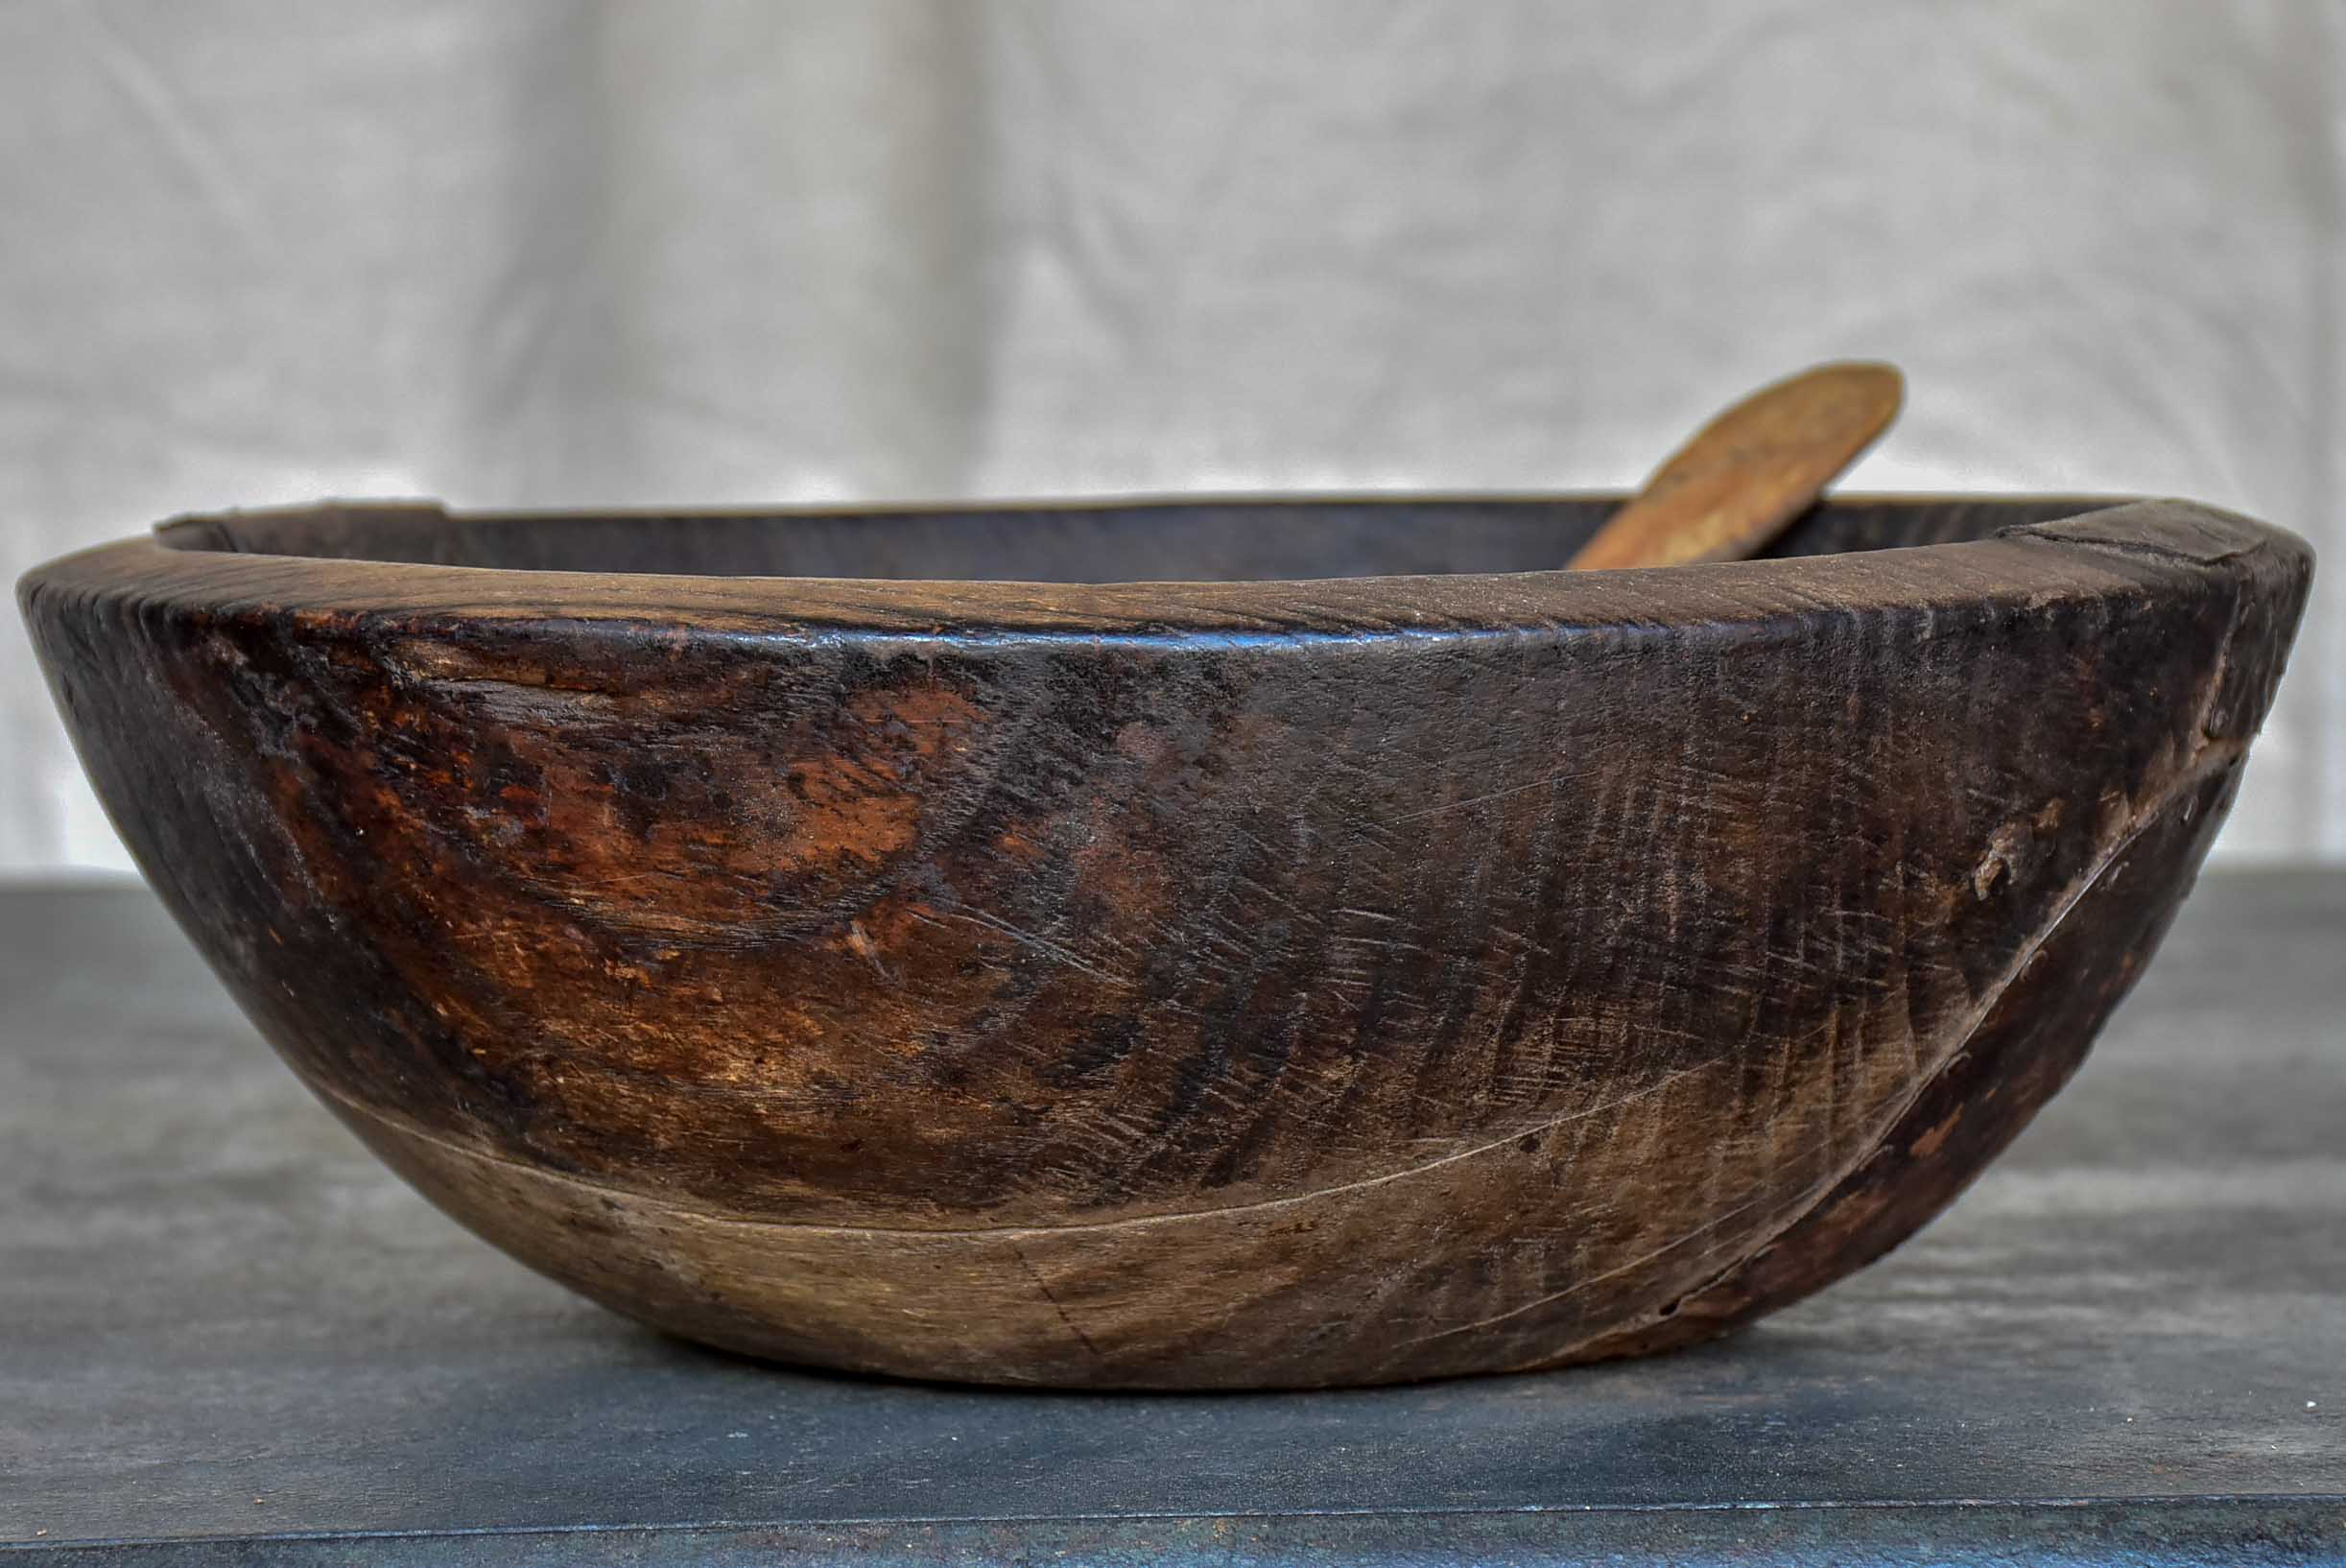 An antique French wooden bowl with repairs